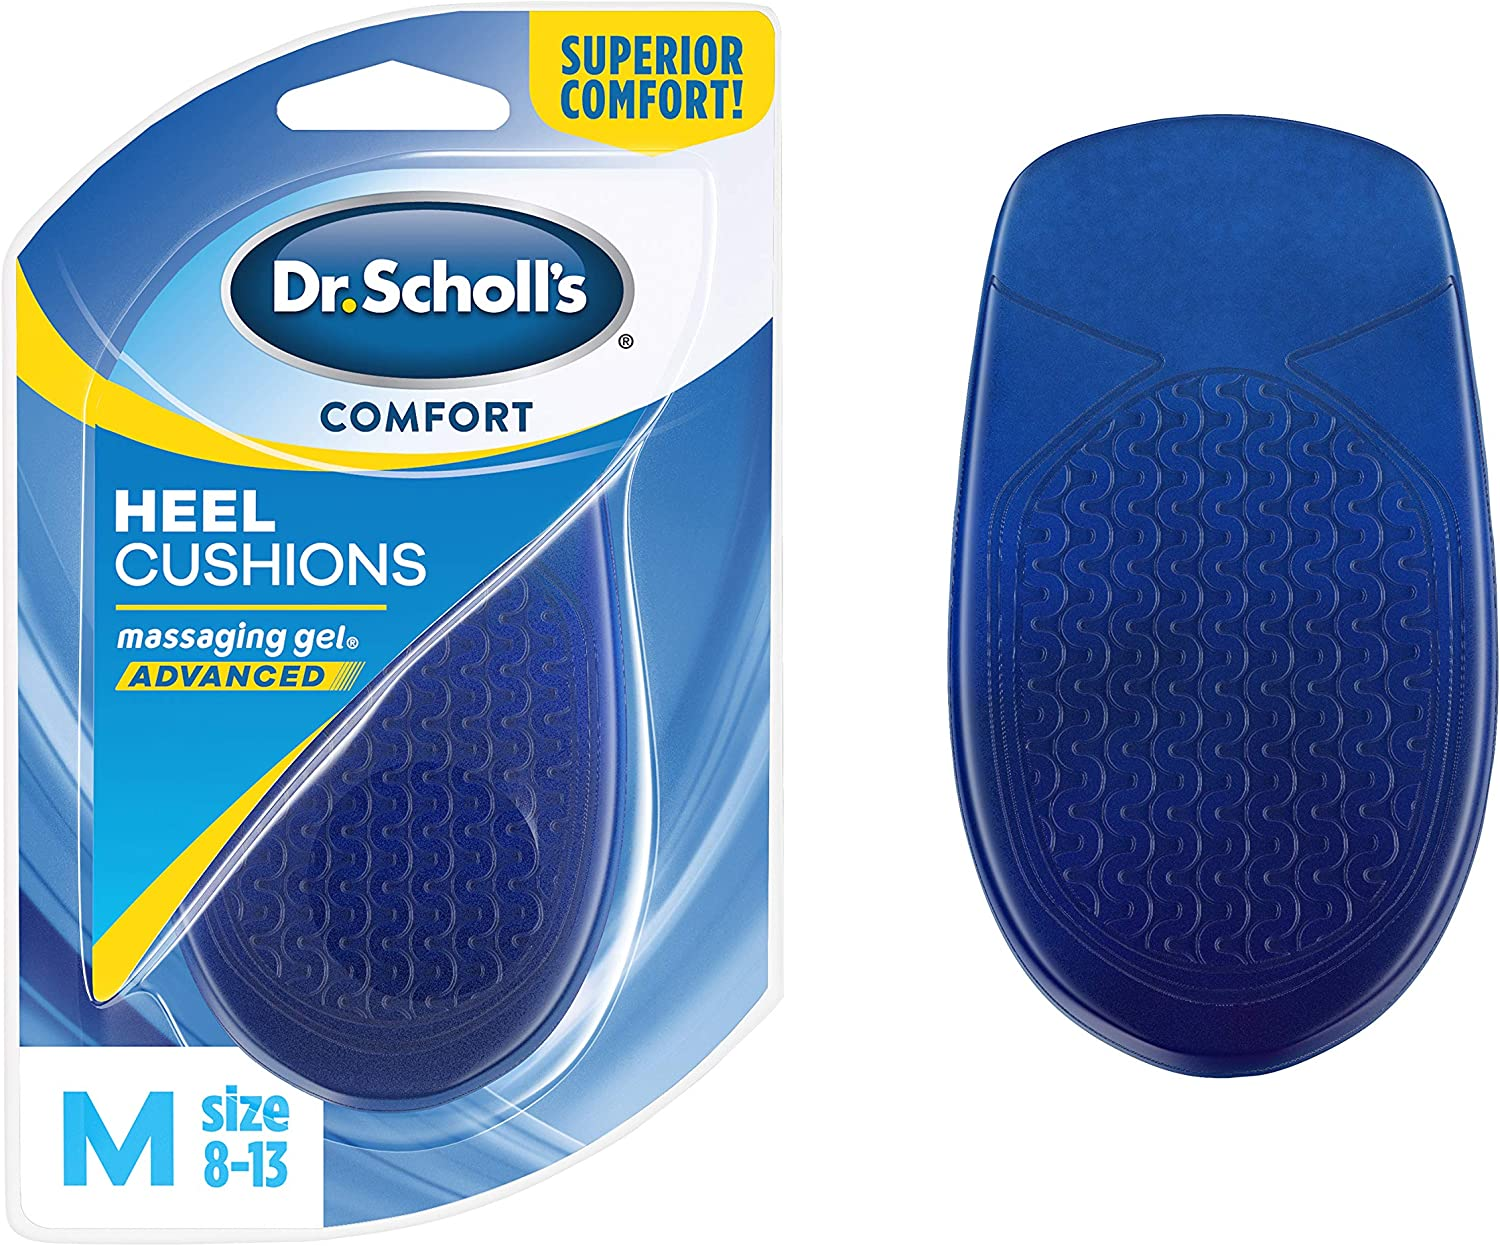 Dr. Scholl's HEEL CUSHIONS with Massaging Gel Advanced // All-Day Shock Absorption and Cushioning to Relieve Heel Discomfort (for Men's 8-13, also available for Women's 6-10): Health & Personal Care